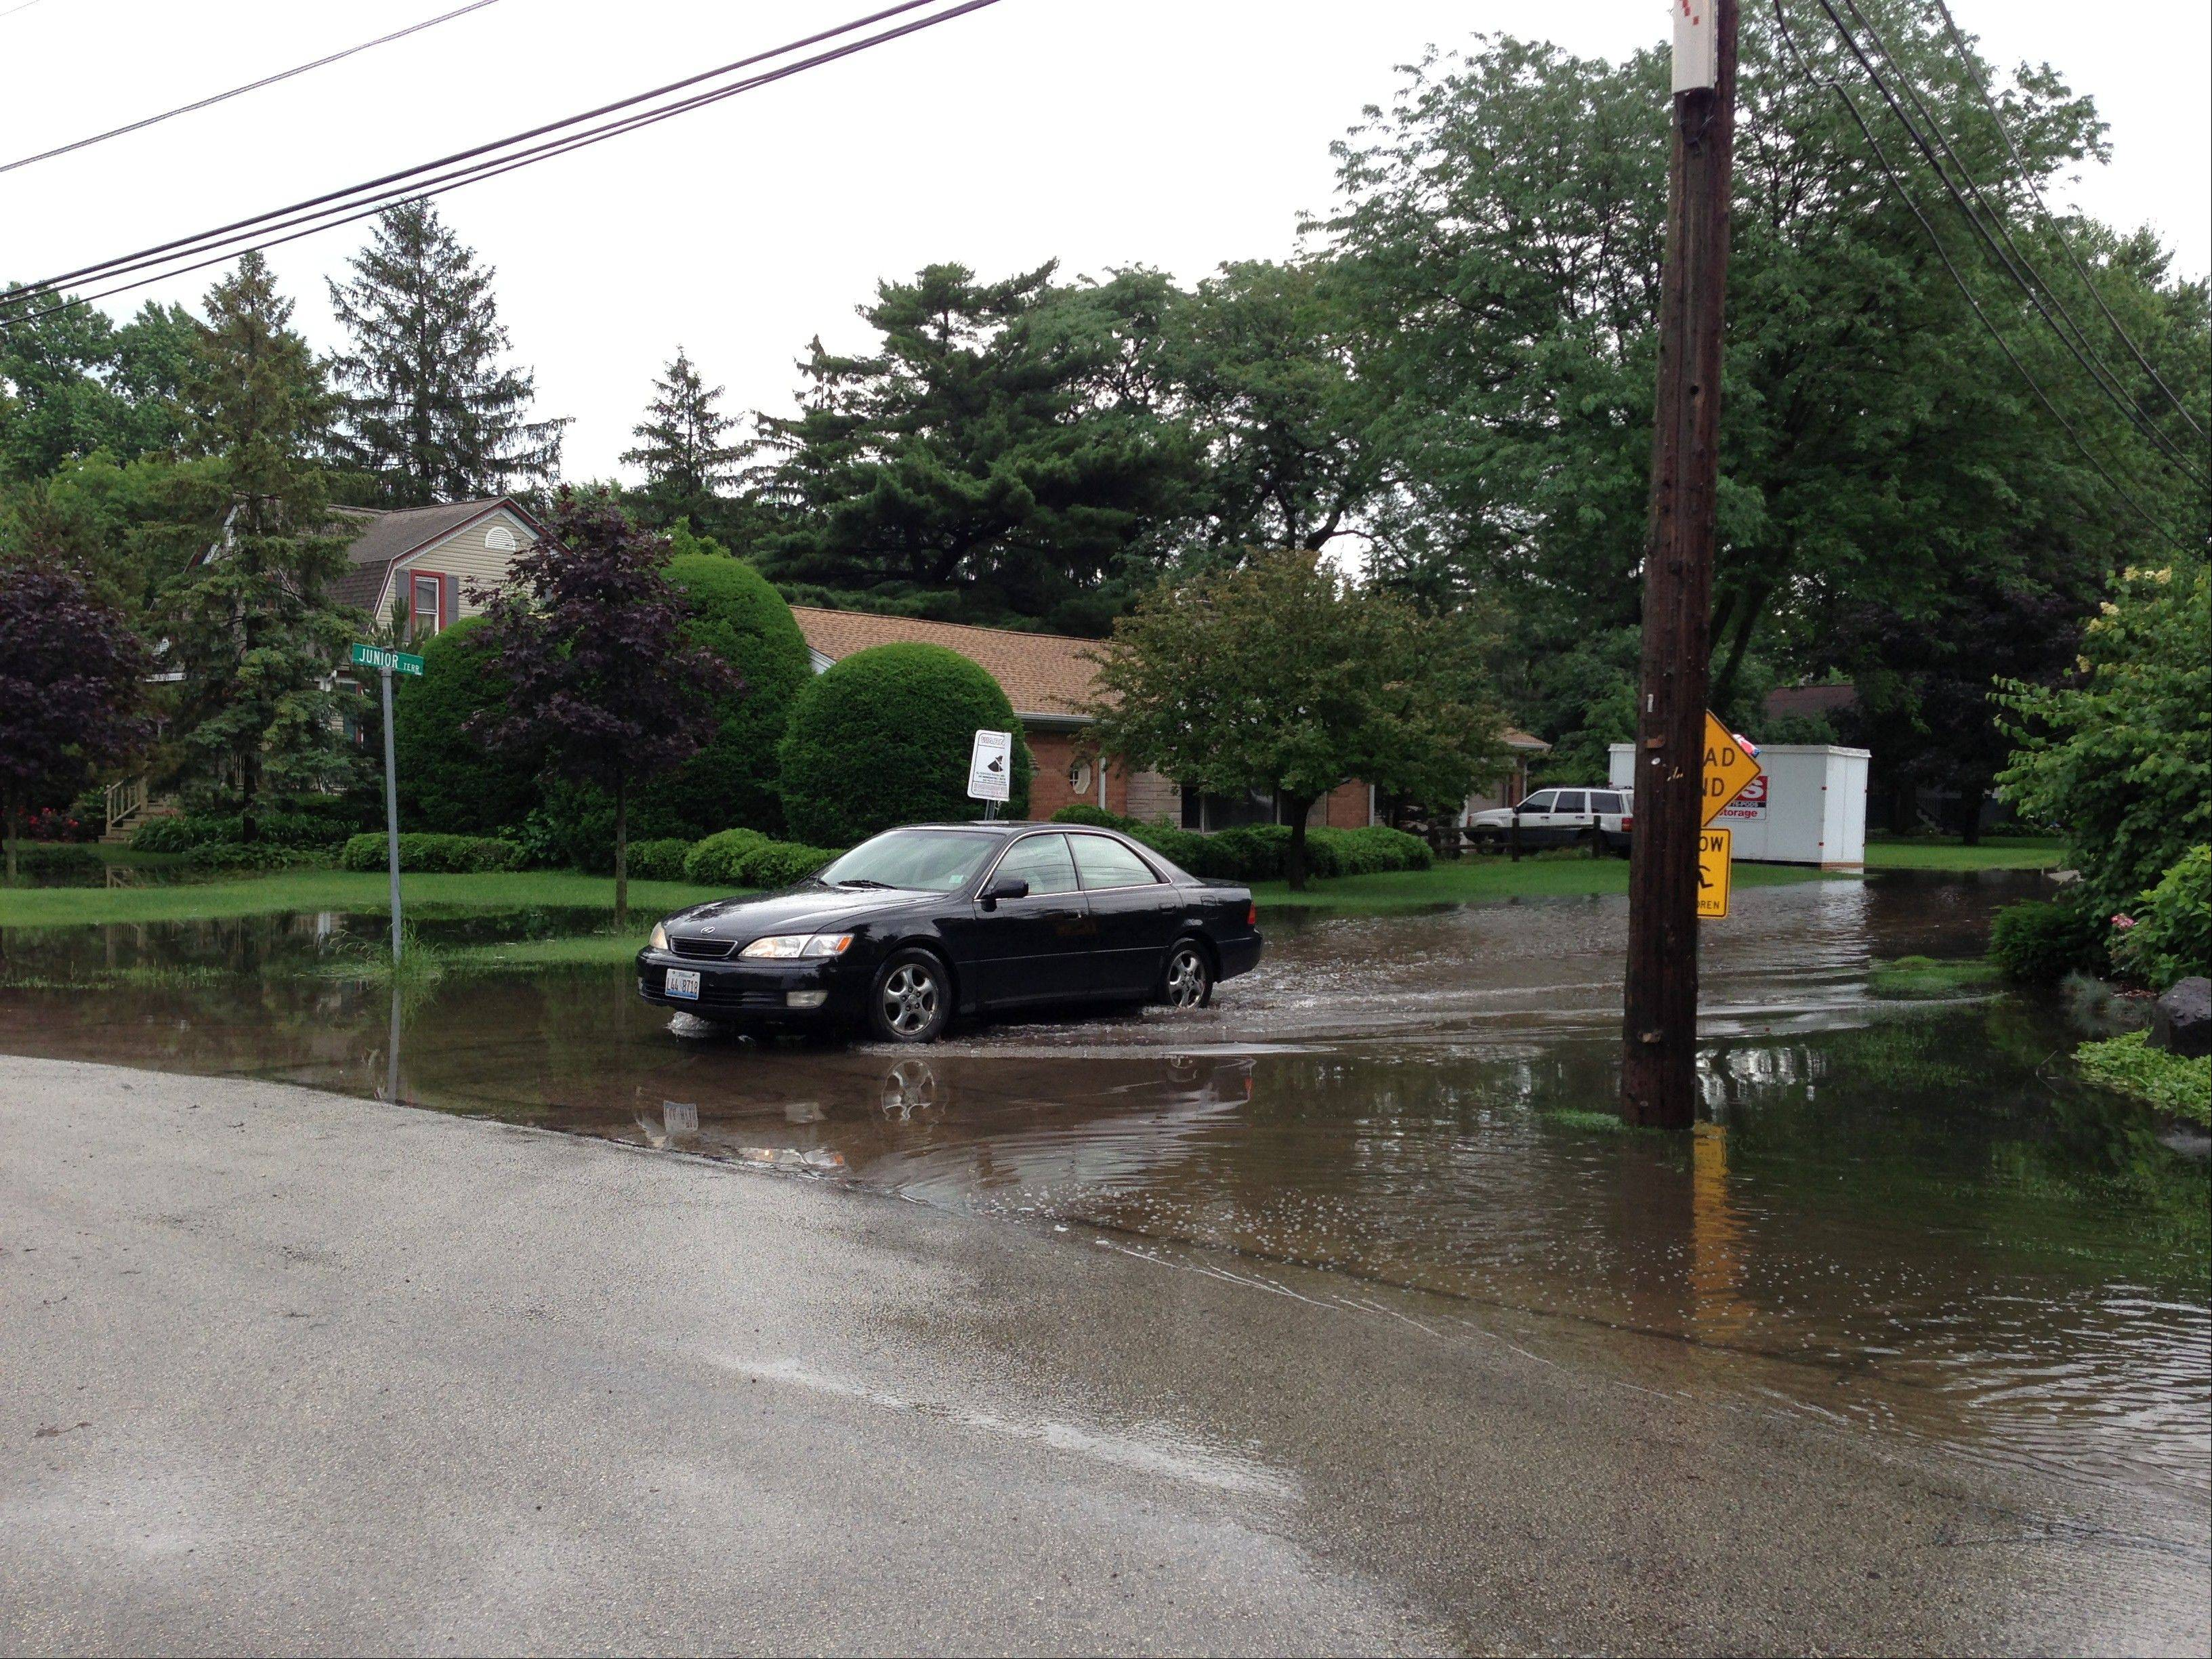 Water was standing Wednesday morning at the intersection of Hawthorne Lane and Junior Terrace near the Big Bend Lake area in Des Plaines.